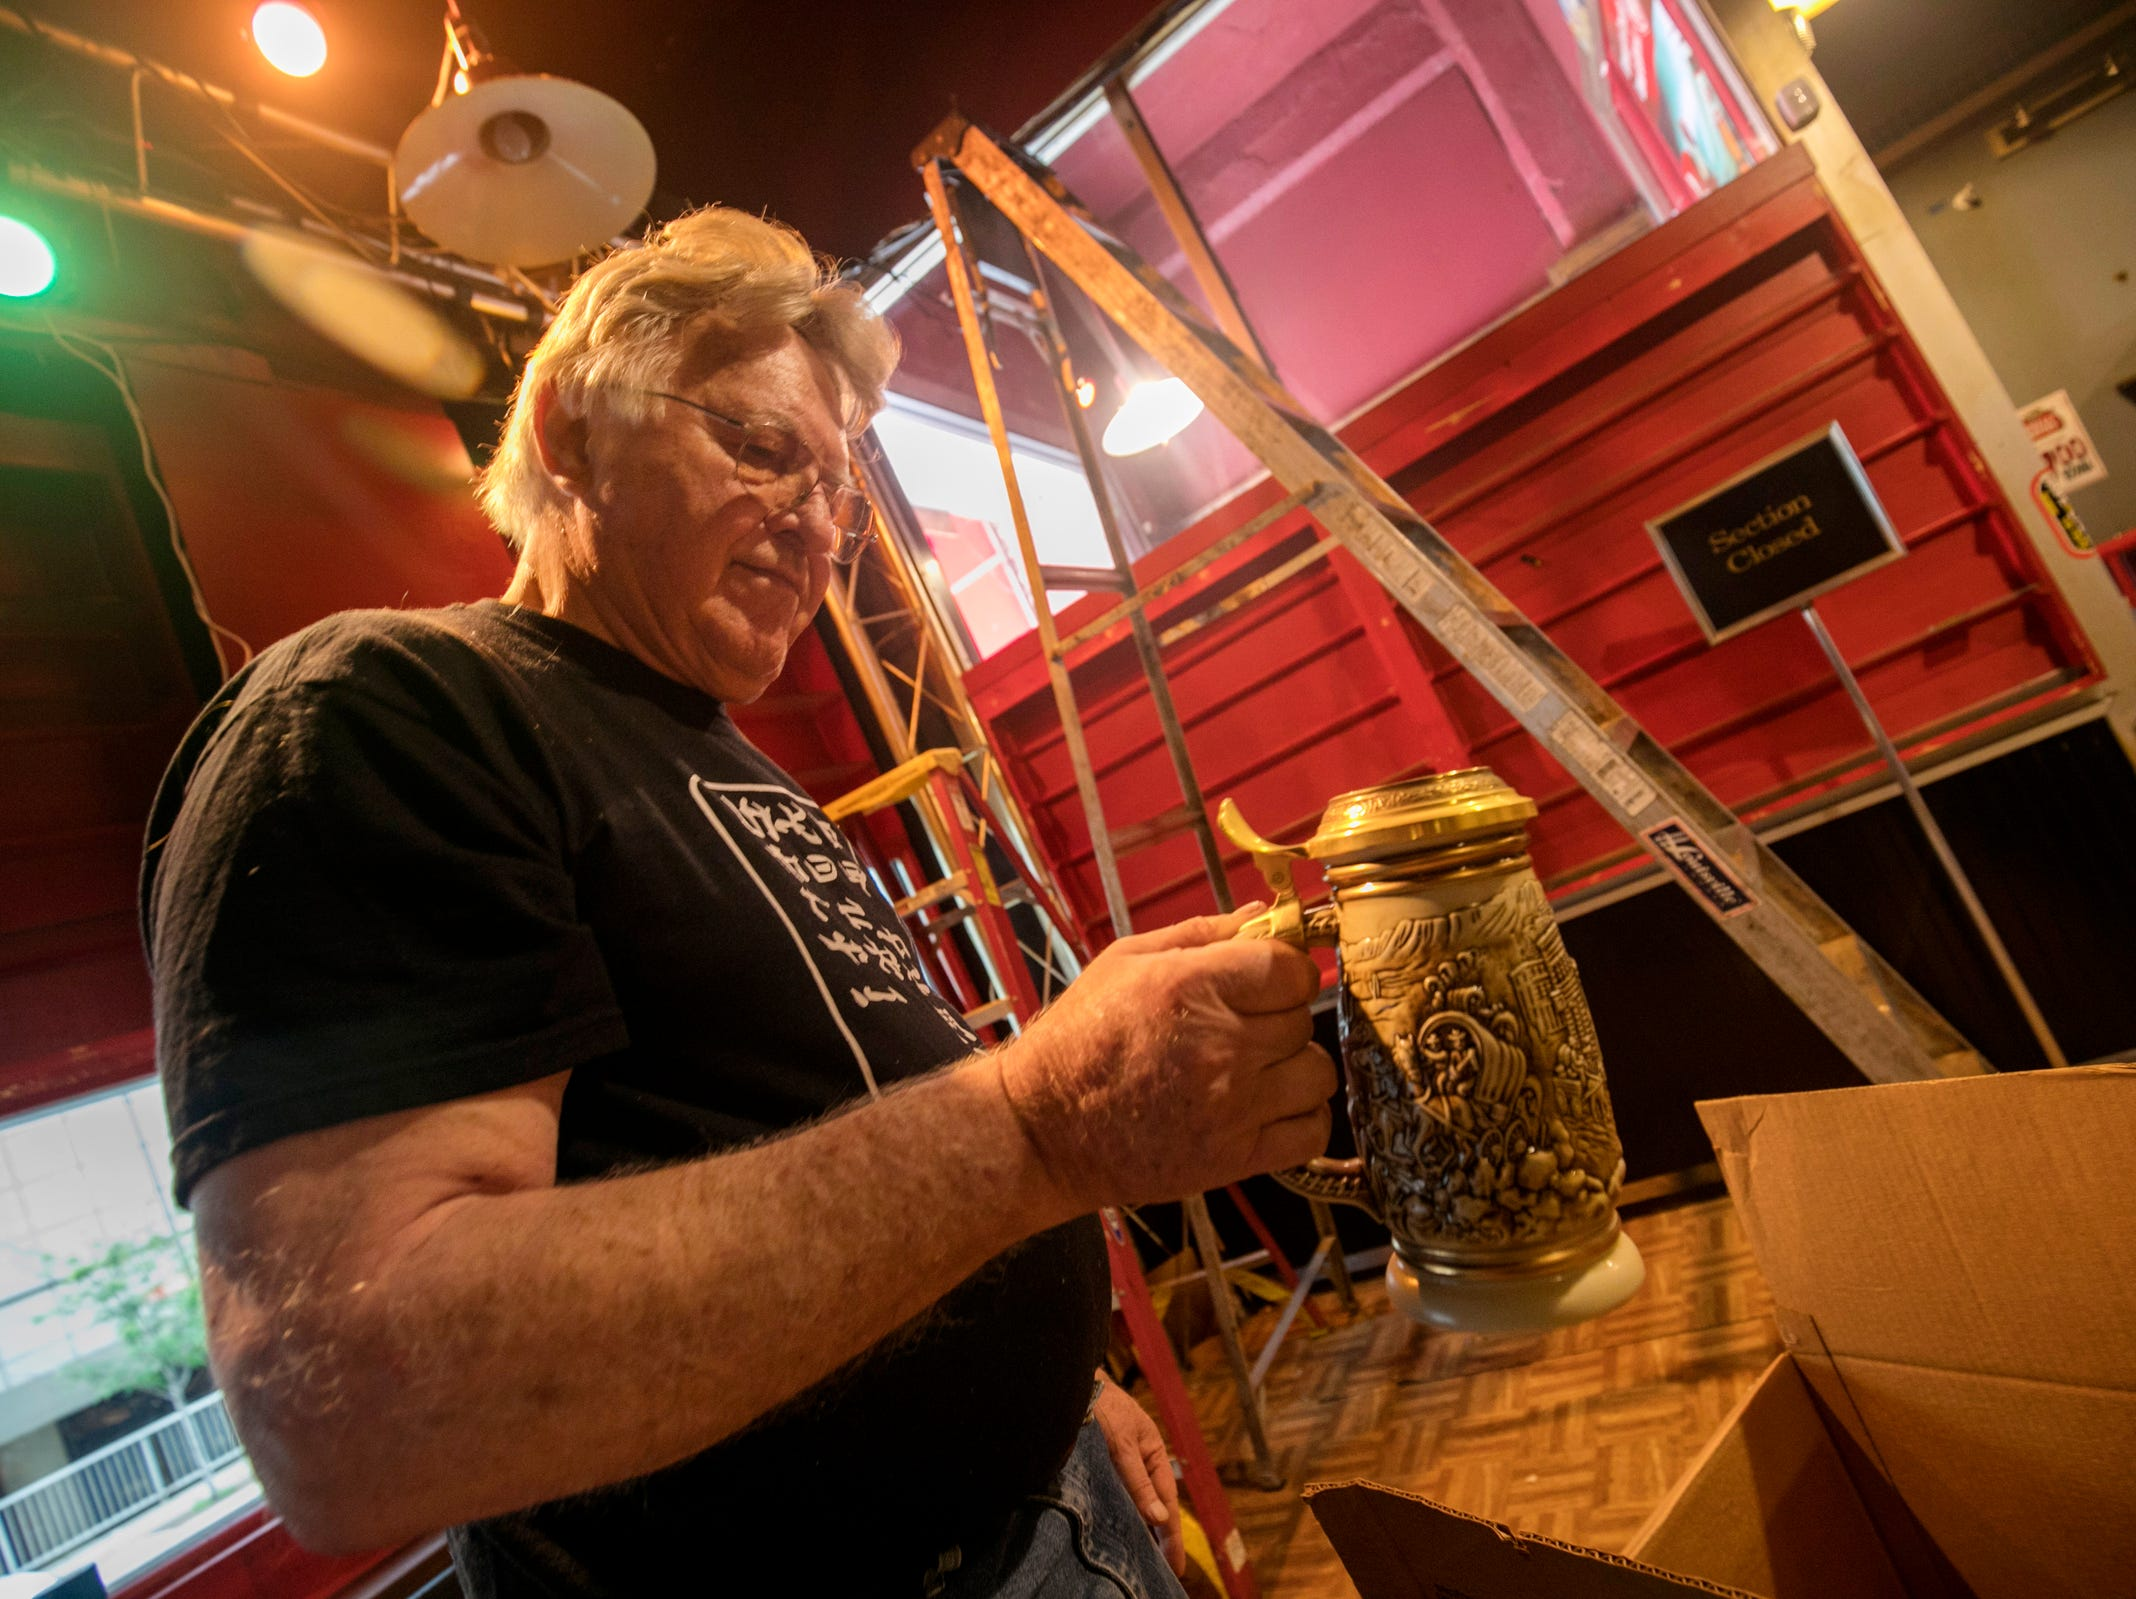 """Cobo Joe's co-owner Richard Cadreau, 71, packs up memorabilia before closing the doors to the sports bar on Tuesday, July 31, 2018. """"It doesn't take much to make people happy,"""" Cadreau said about interacting with customers over the years. """"I have made a lot of friends here,"""" he added."""